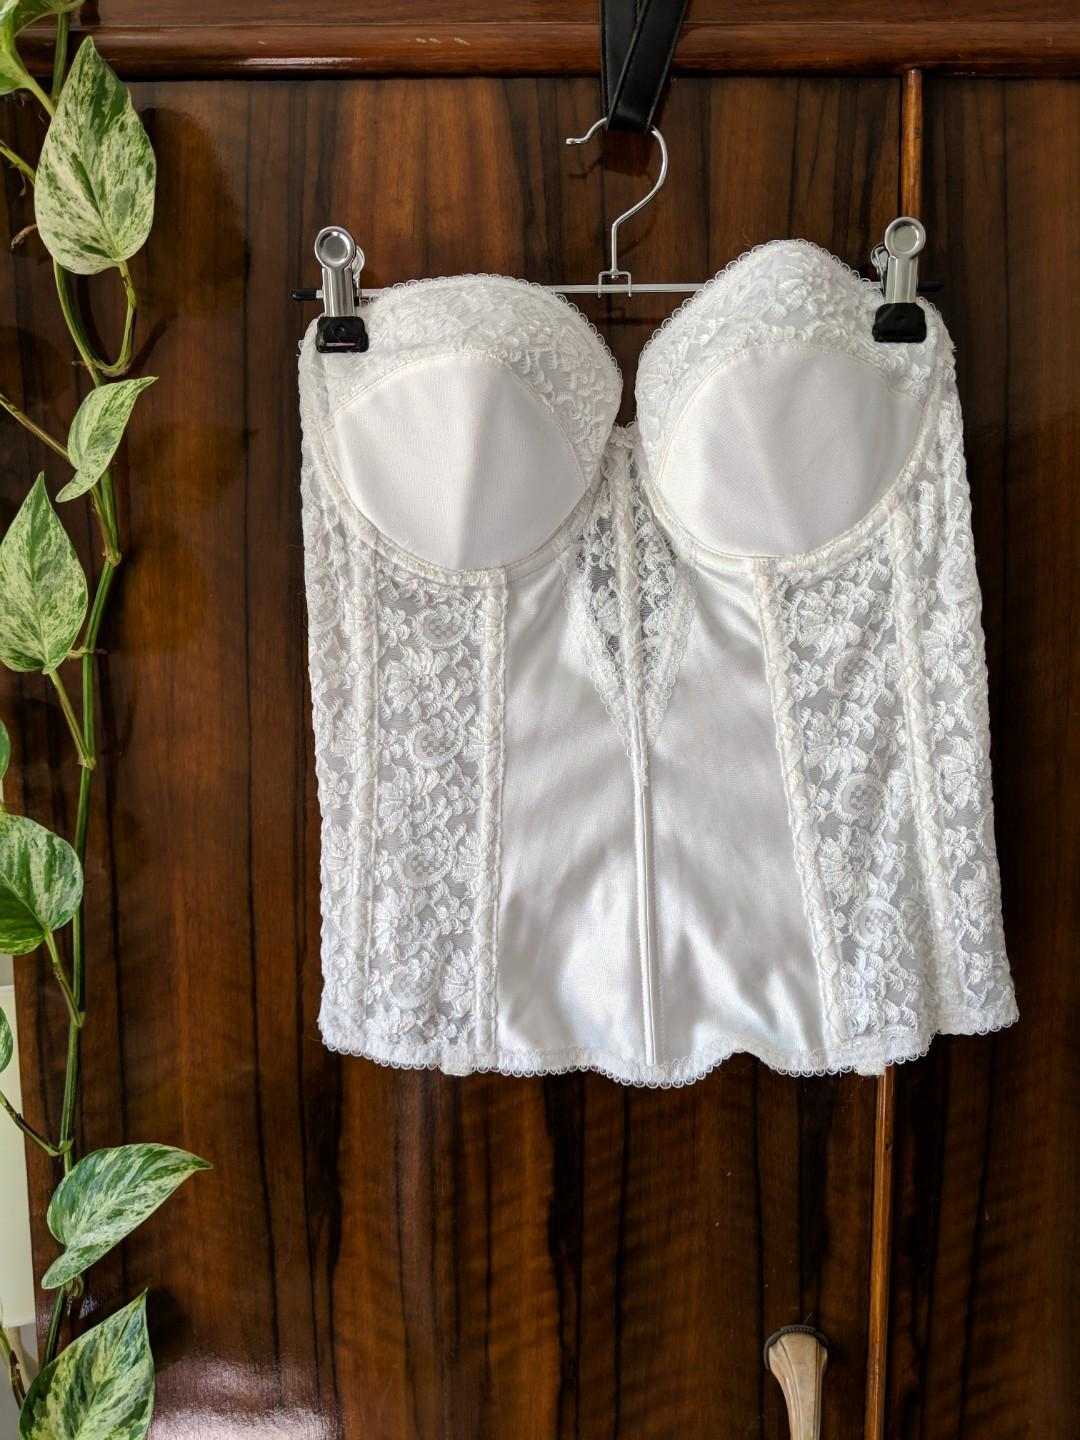 Bridal cordset with lace detail